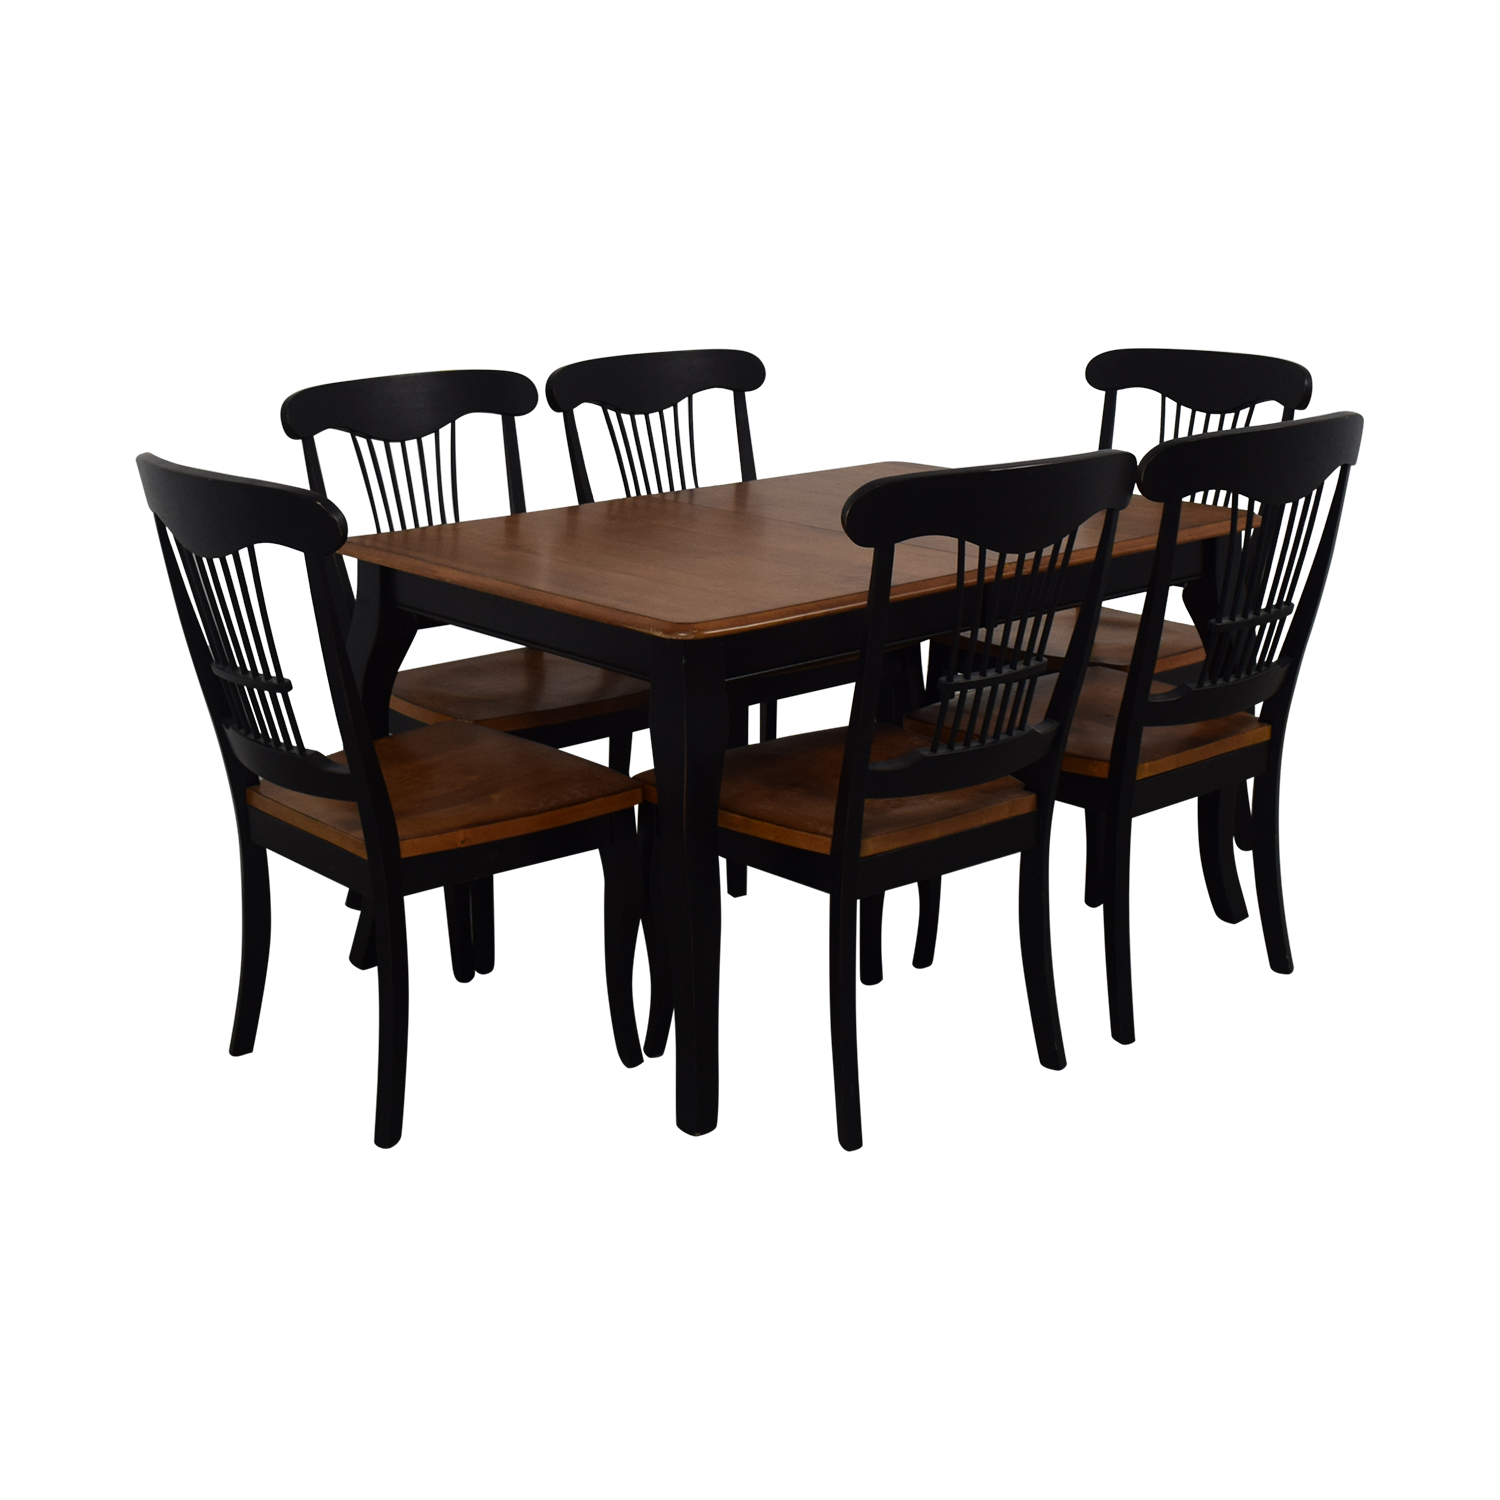 Raymour & Flanigan Dining Table and Chairs Raymour & Flanigan